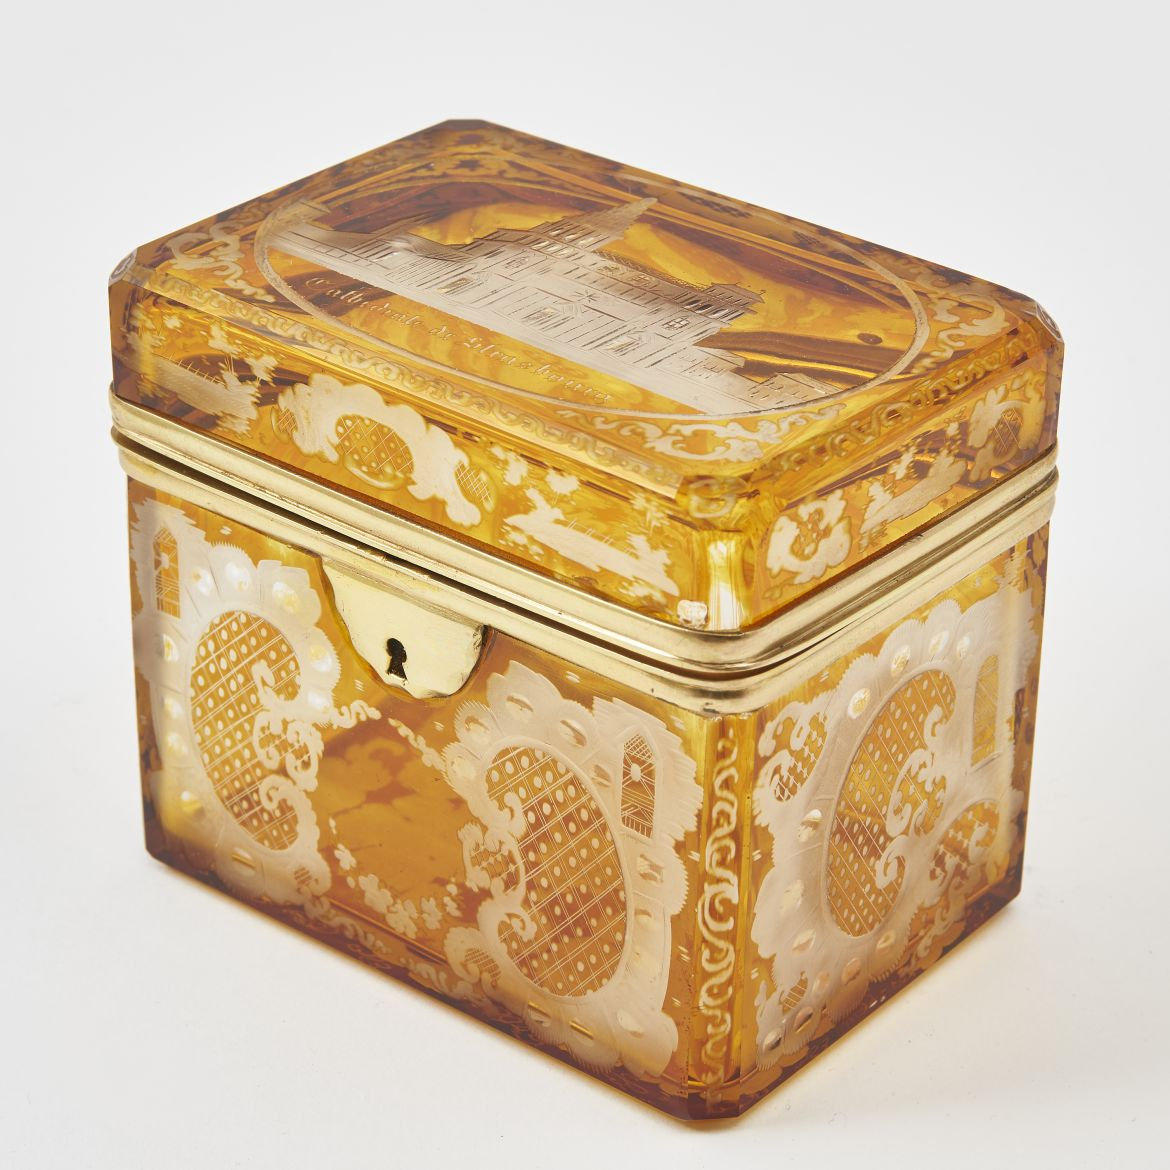 Bohemian Box With Strasbourg Cathedral Decoration